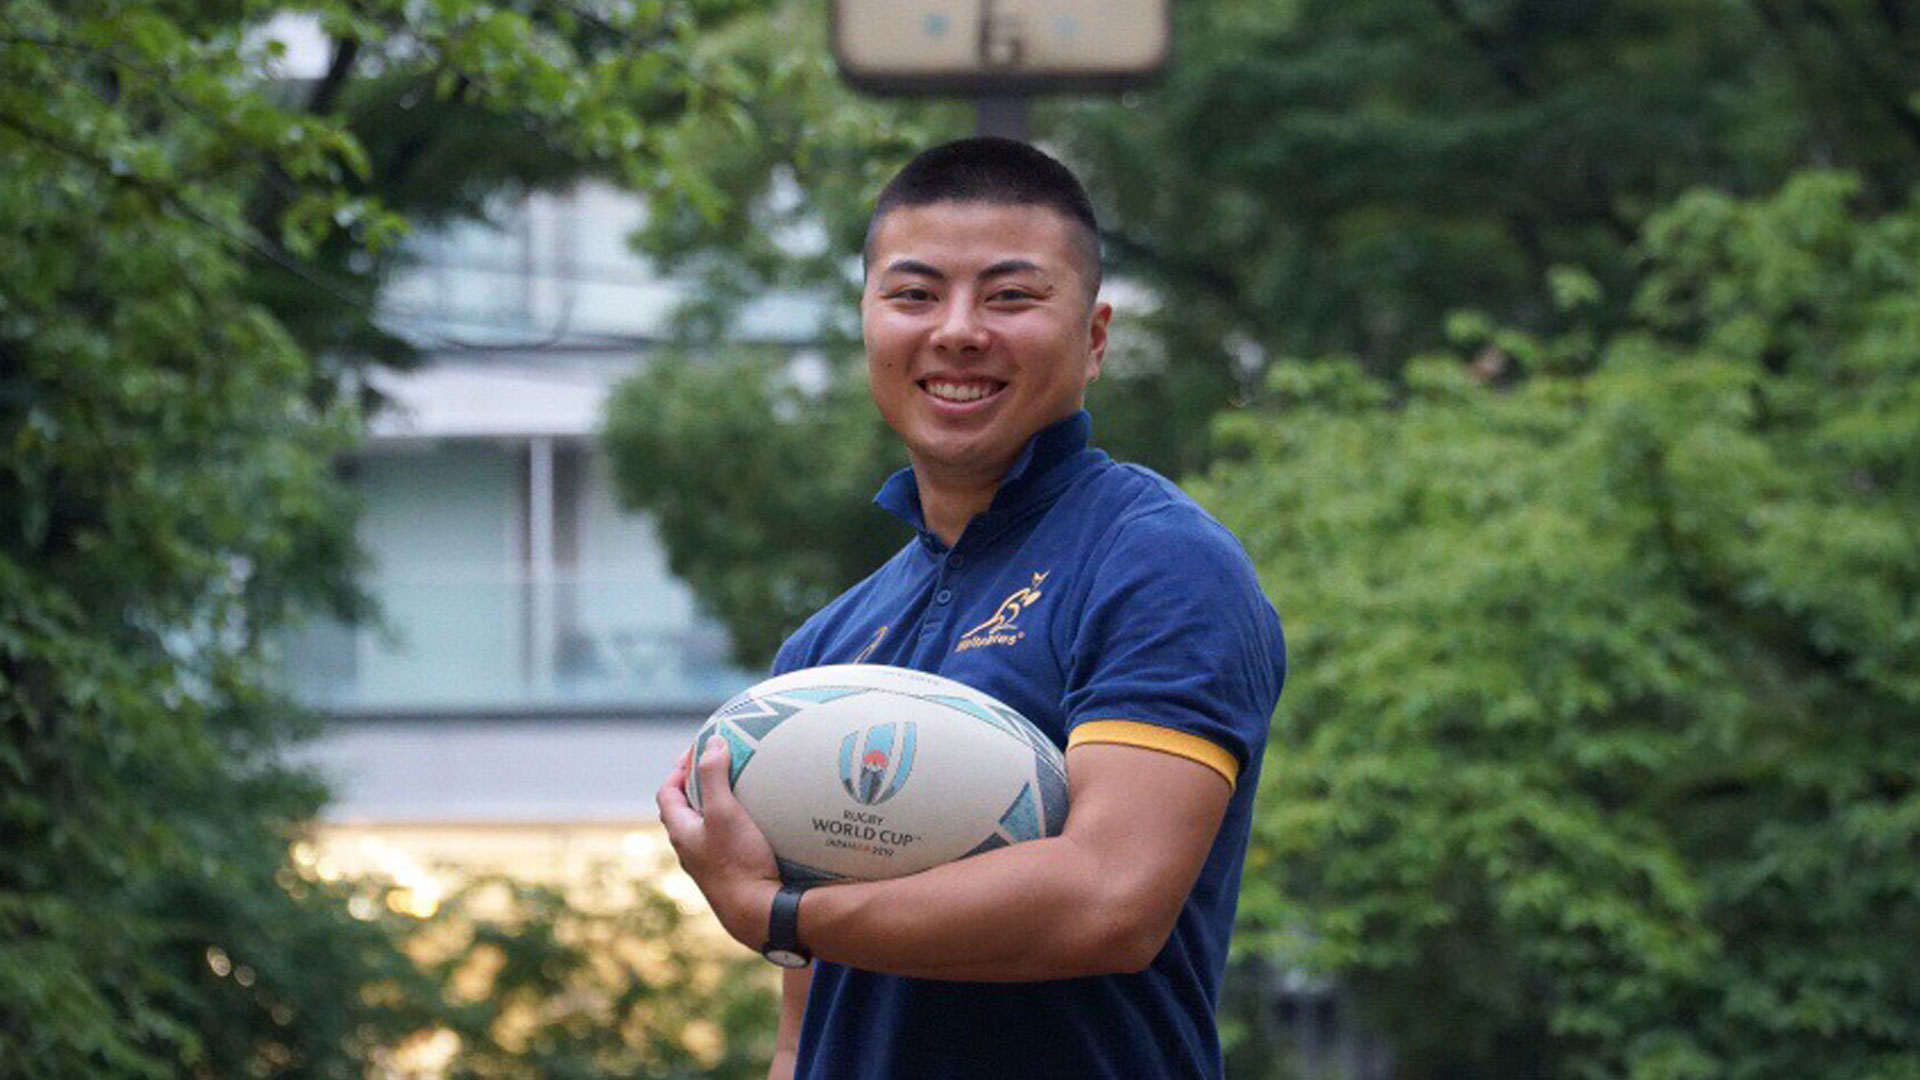 Sport Business and Leadership student helps with Homeless Rugby Charity